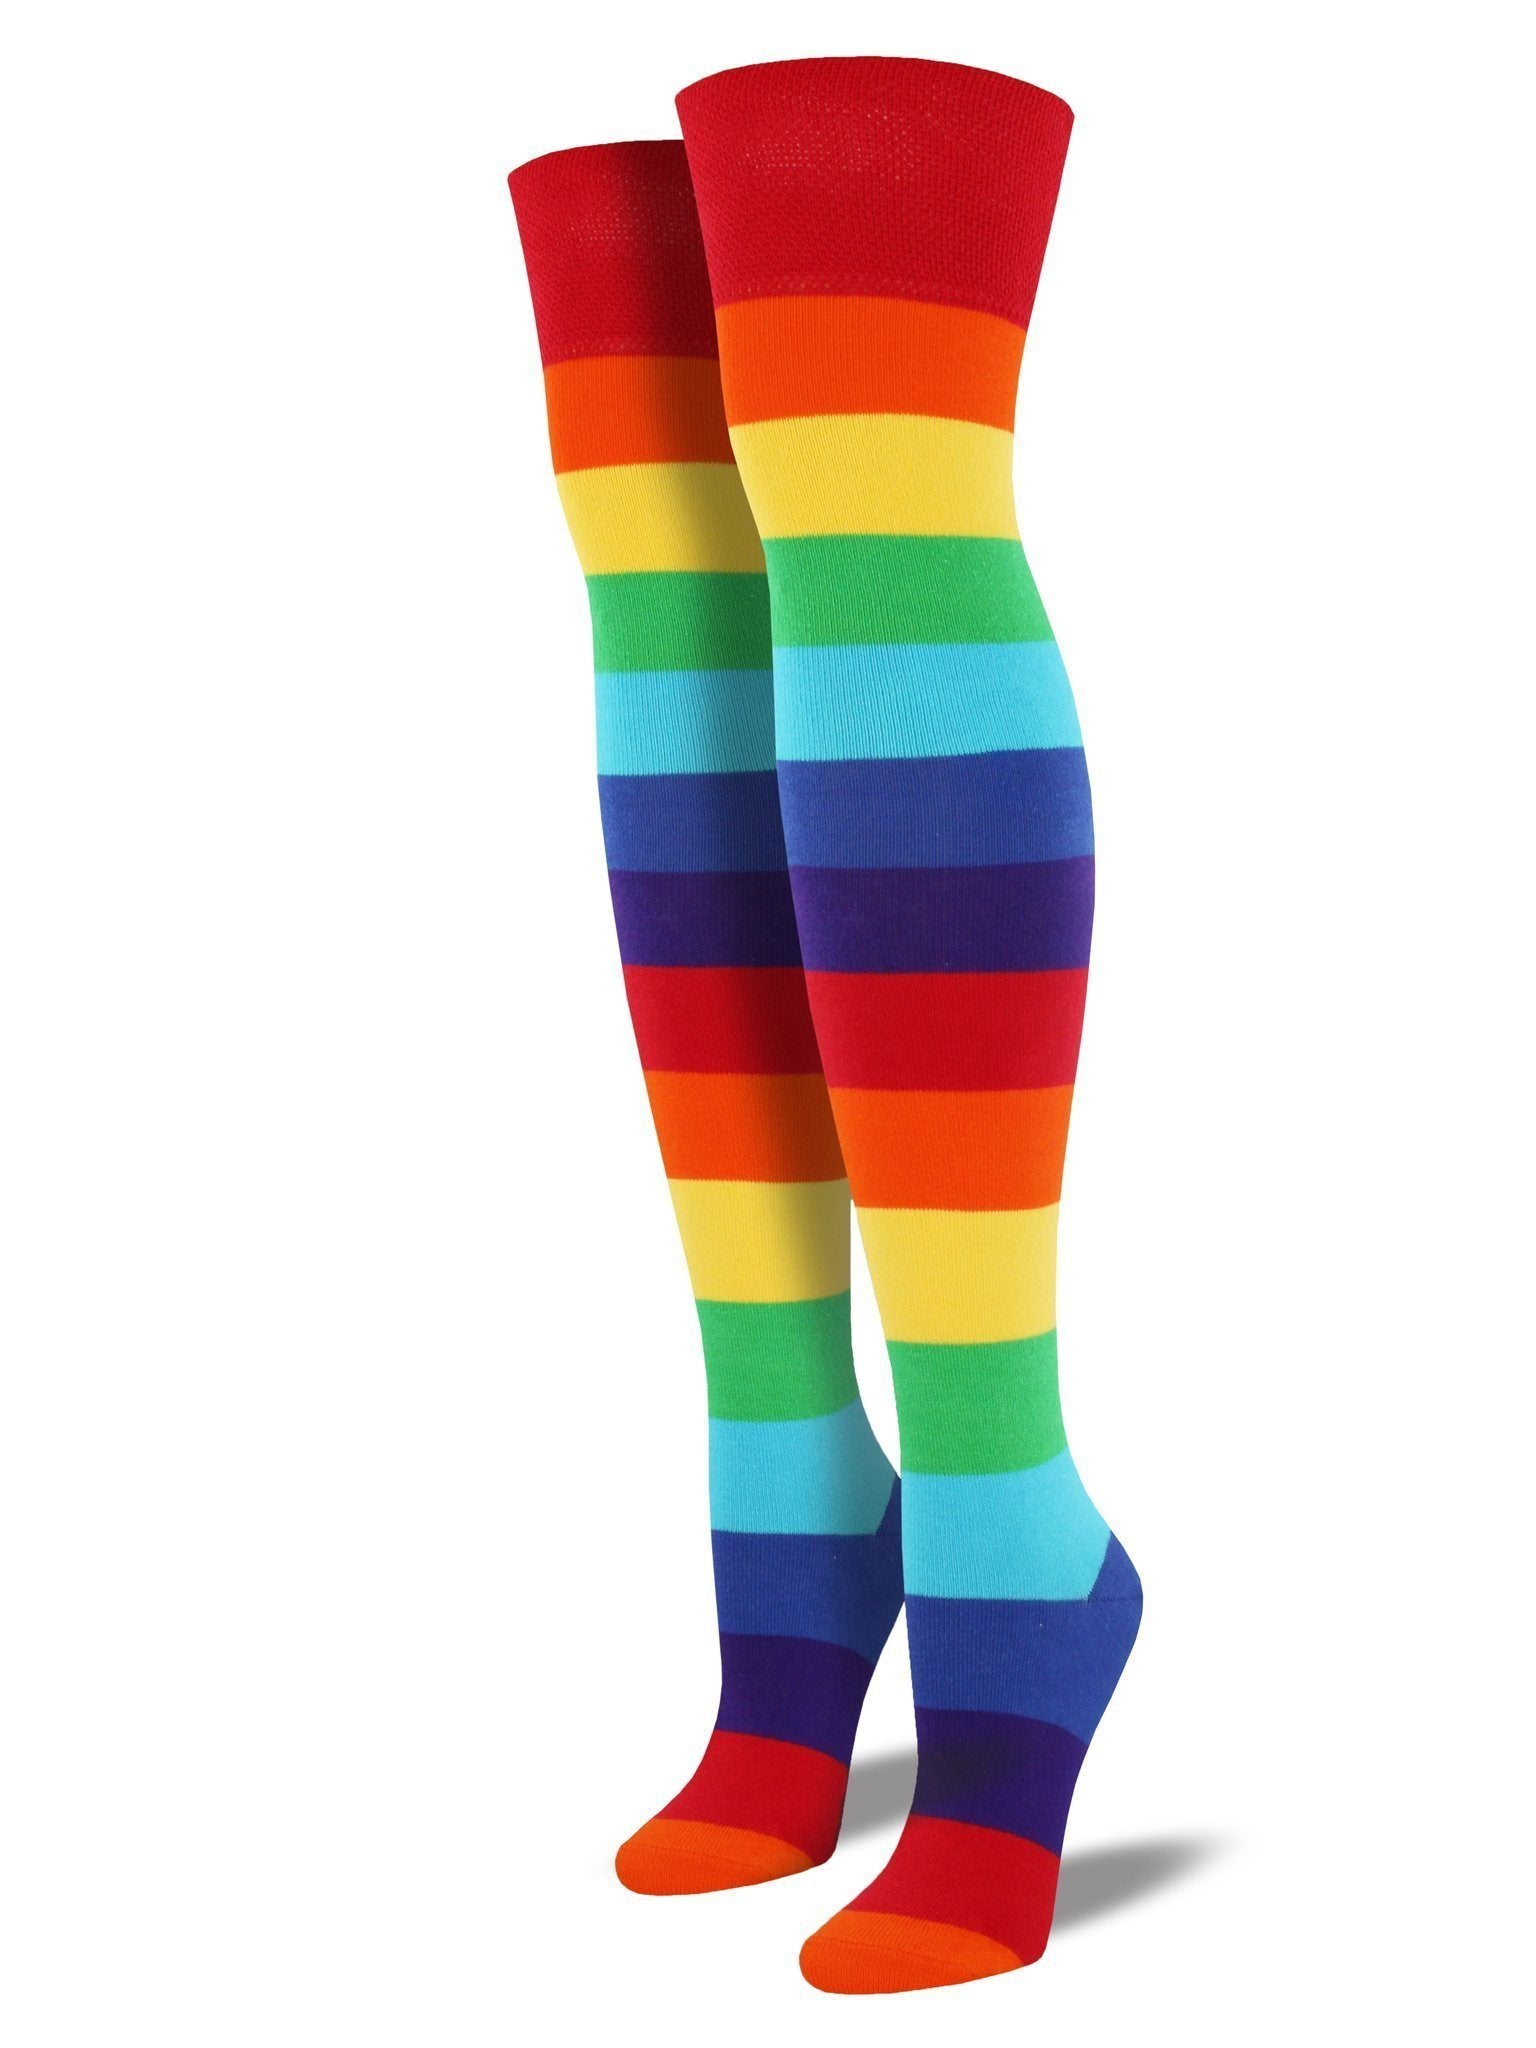 Socksmith - Rainbow Over The Knee Socks | Women's - Knock Your Socks Off